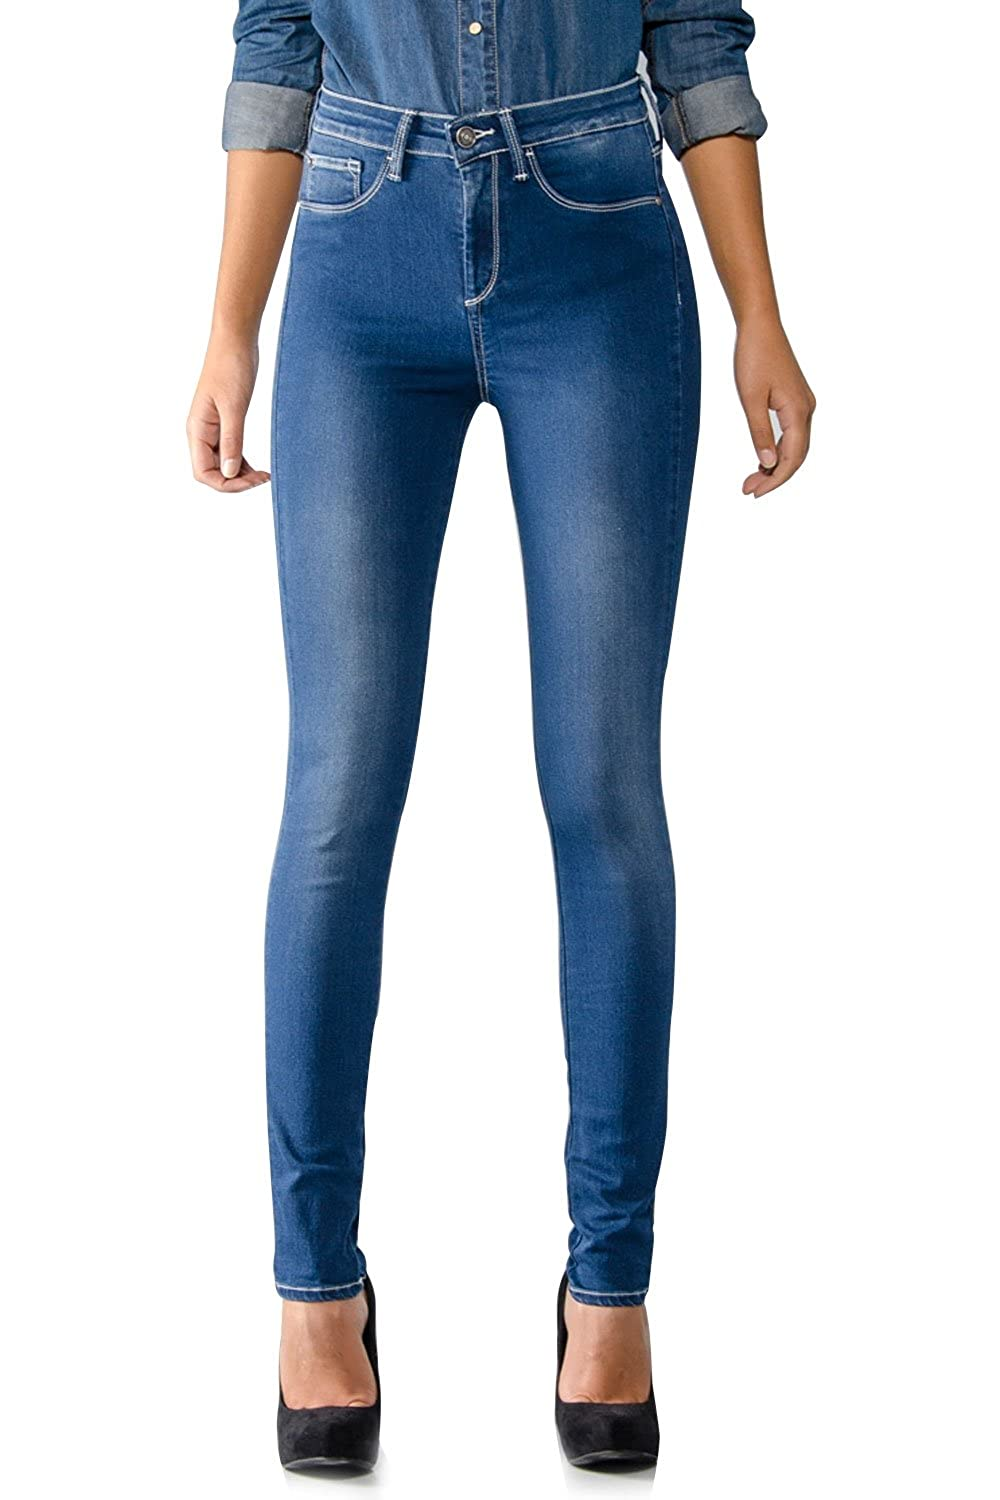 JEANS ONE SIZE HIGH 3